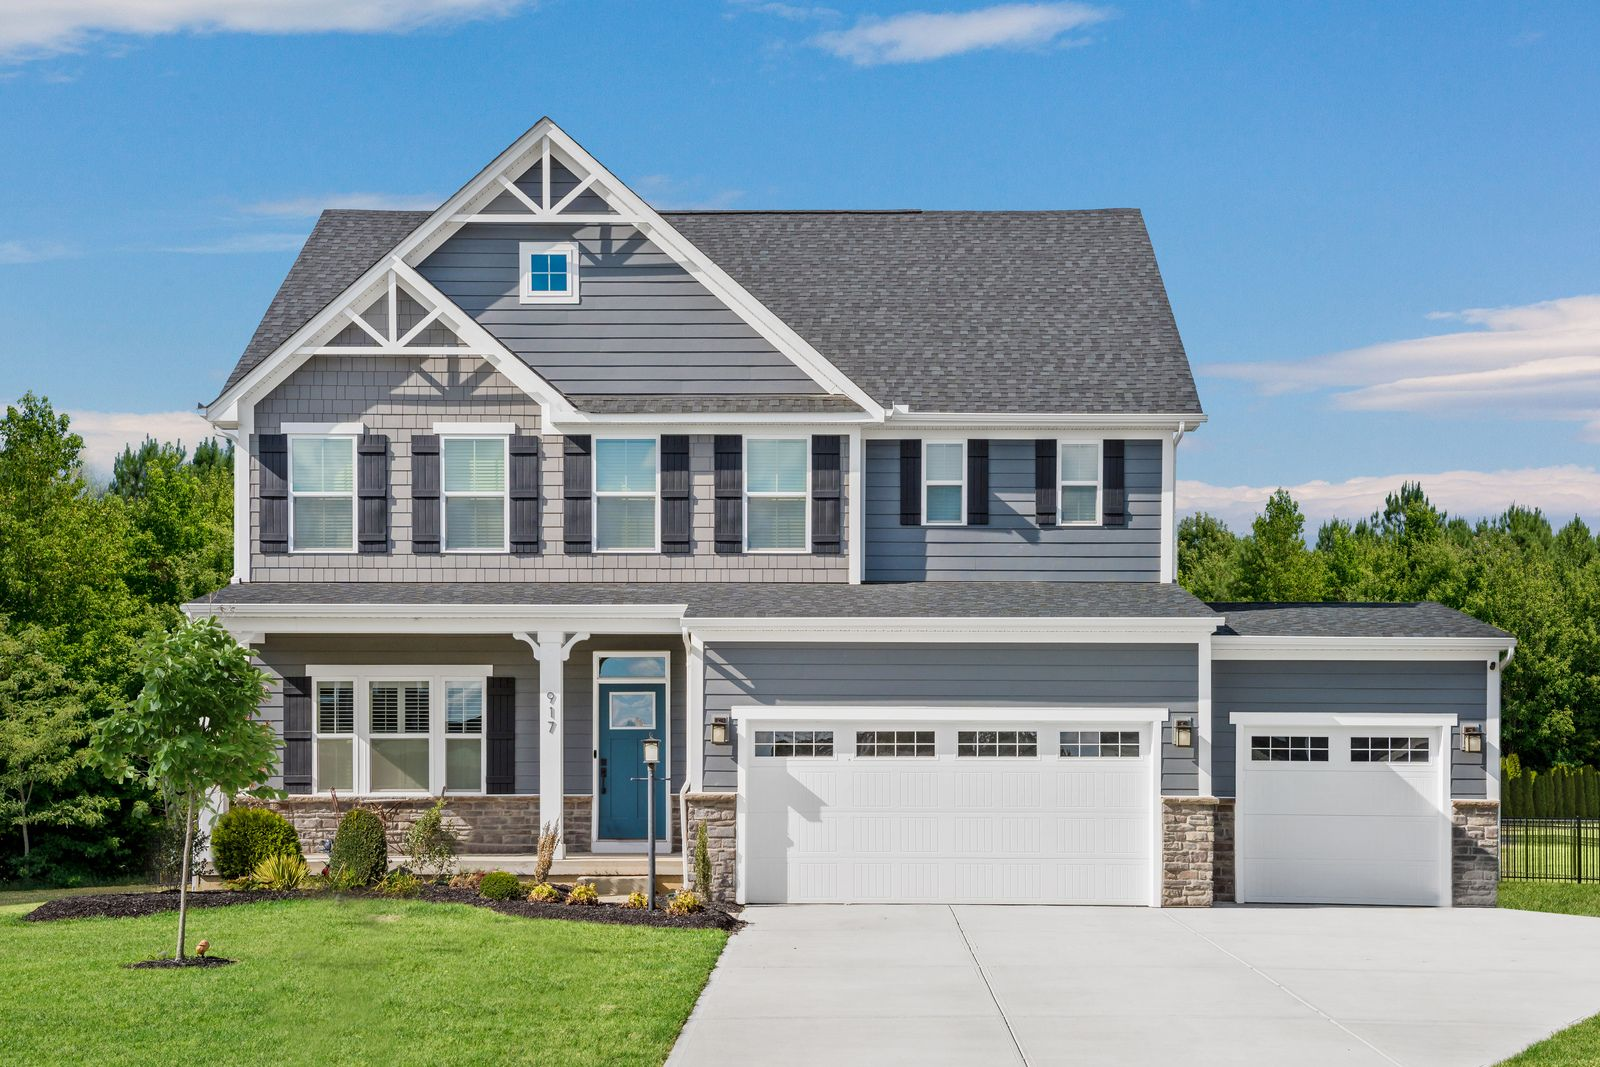 New Homes close to South Charlotte for an Amazing Value:The newest phase of homesitesis now available!Scheduleavisittosee the selection of cul-de-sac, wooded, and basement homesites.